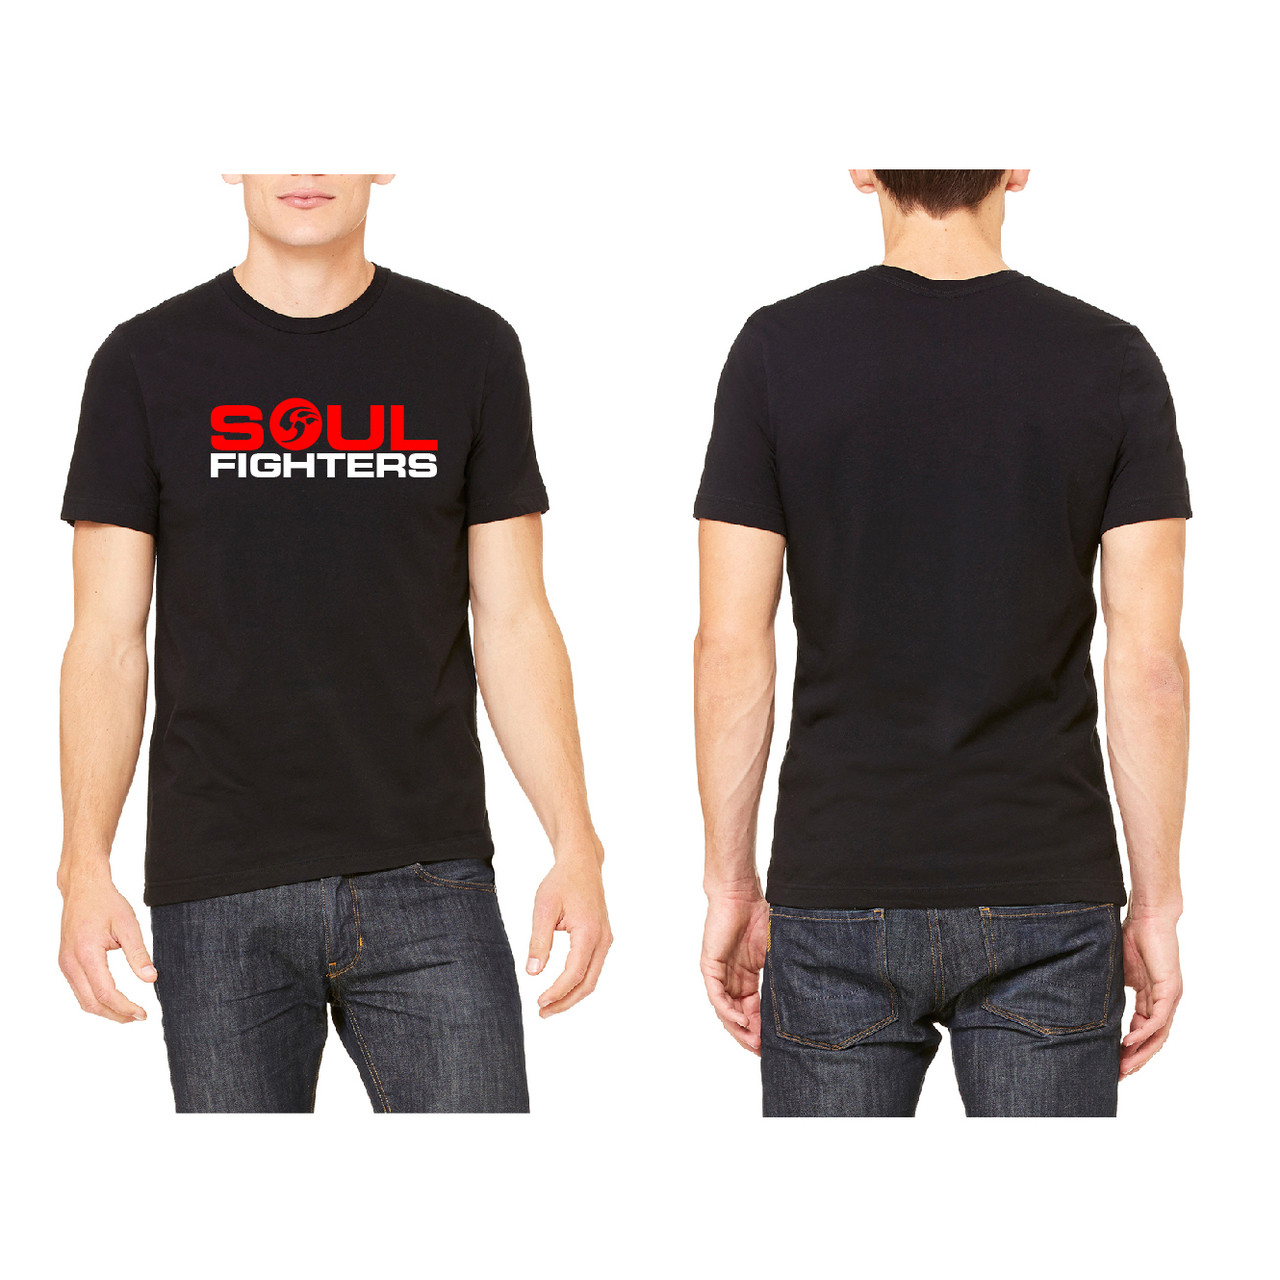 Brand new Men's Black Chest Logo T-shirt - SoulFighters QX62